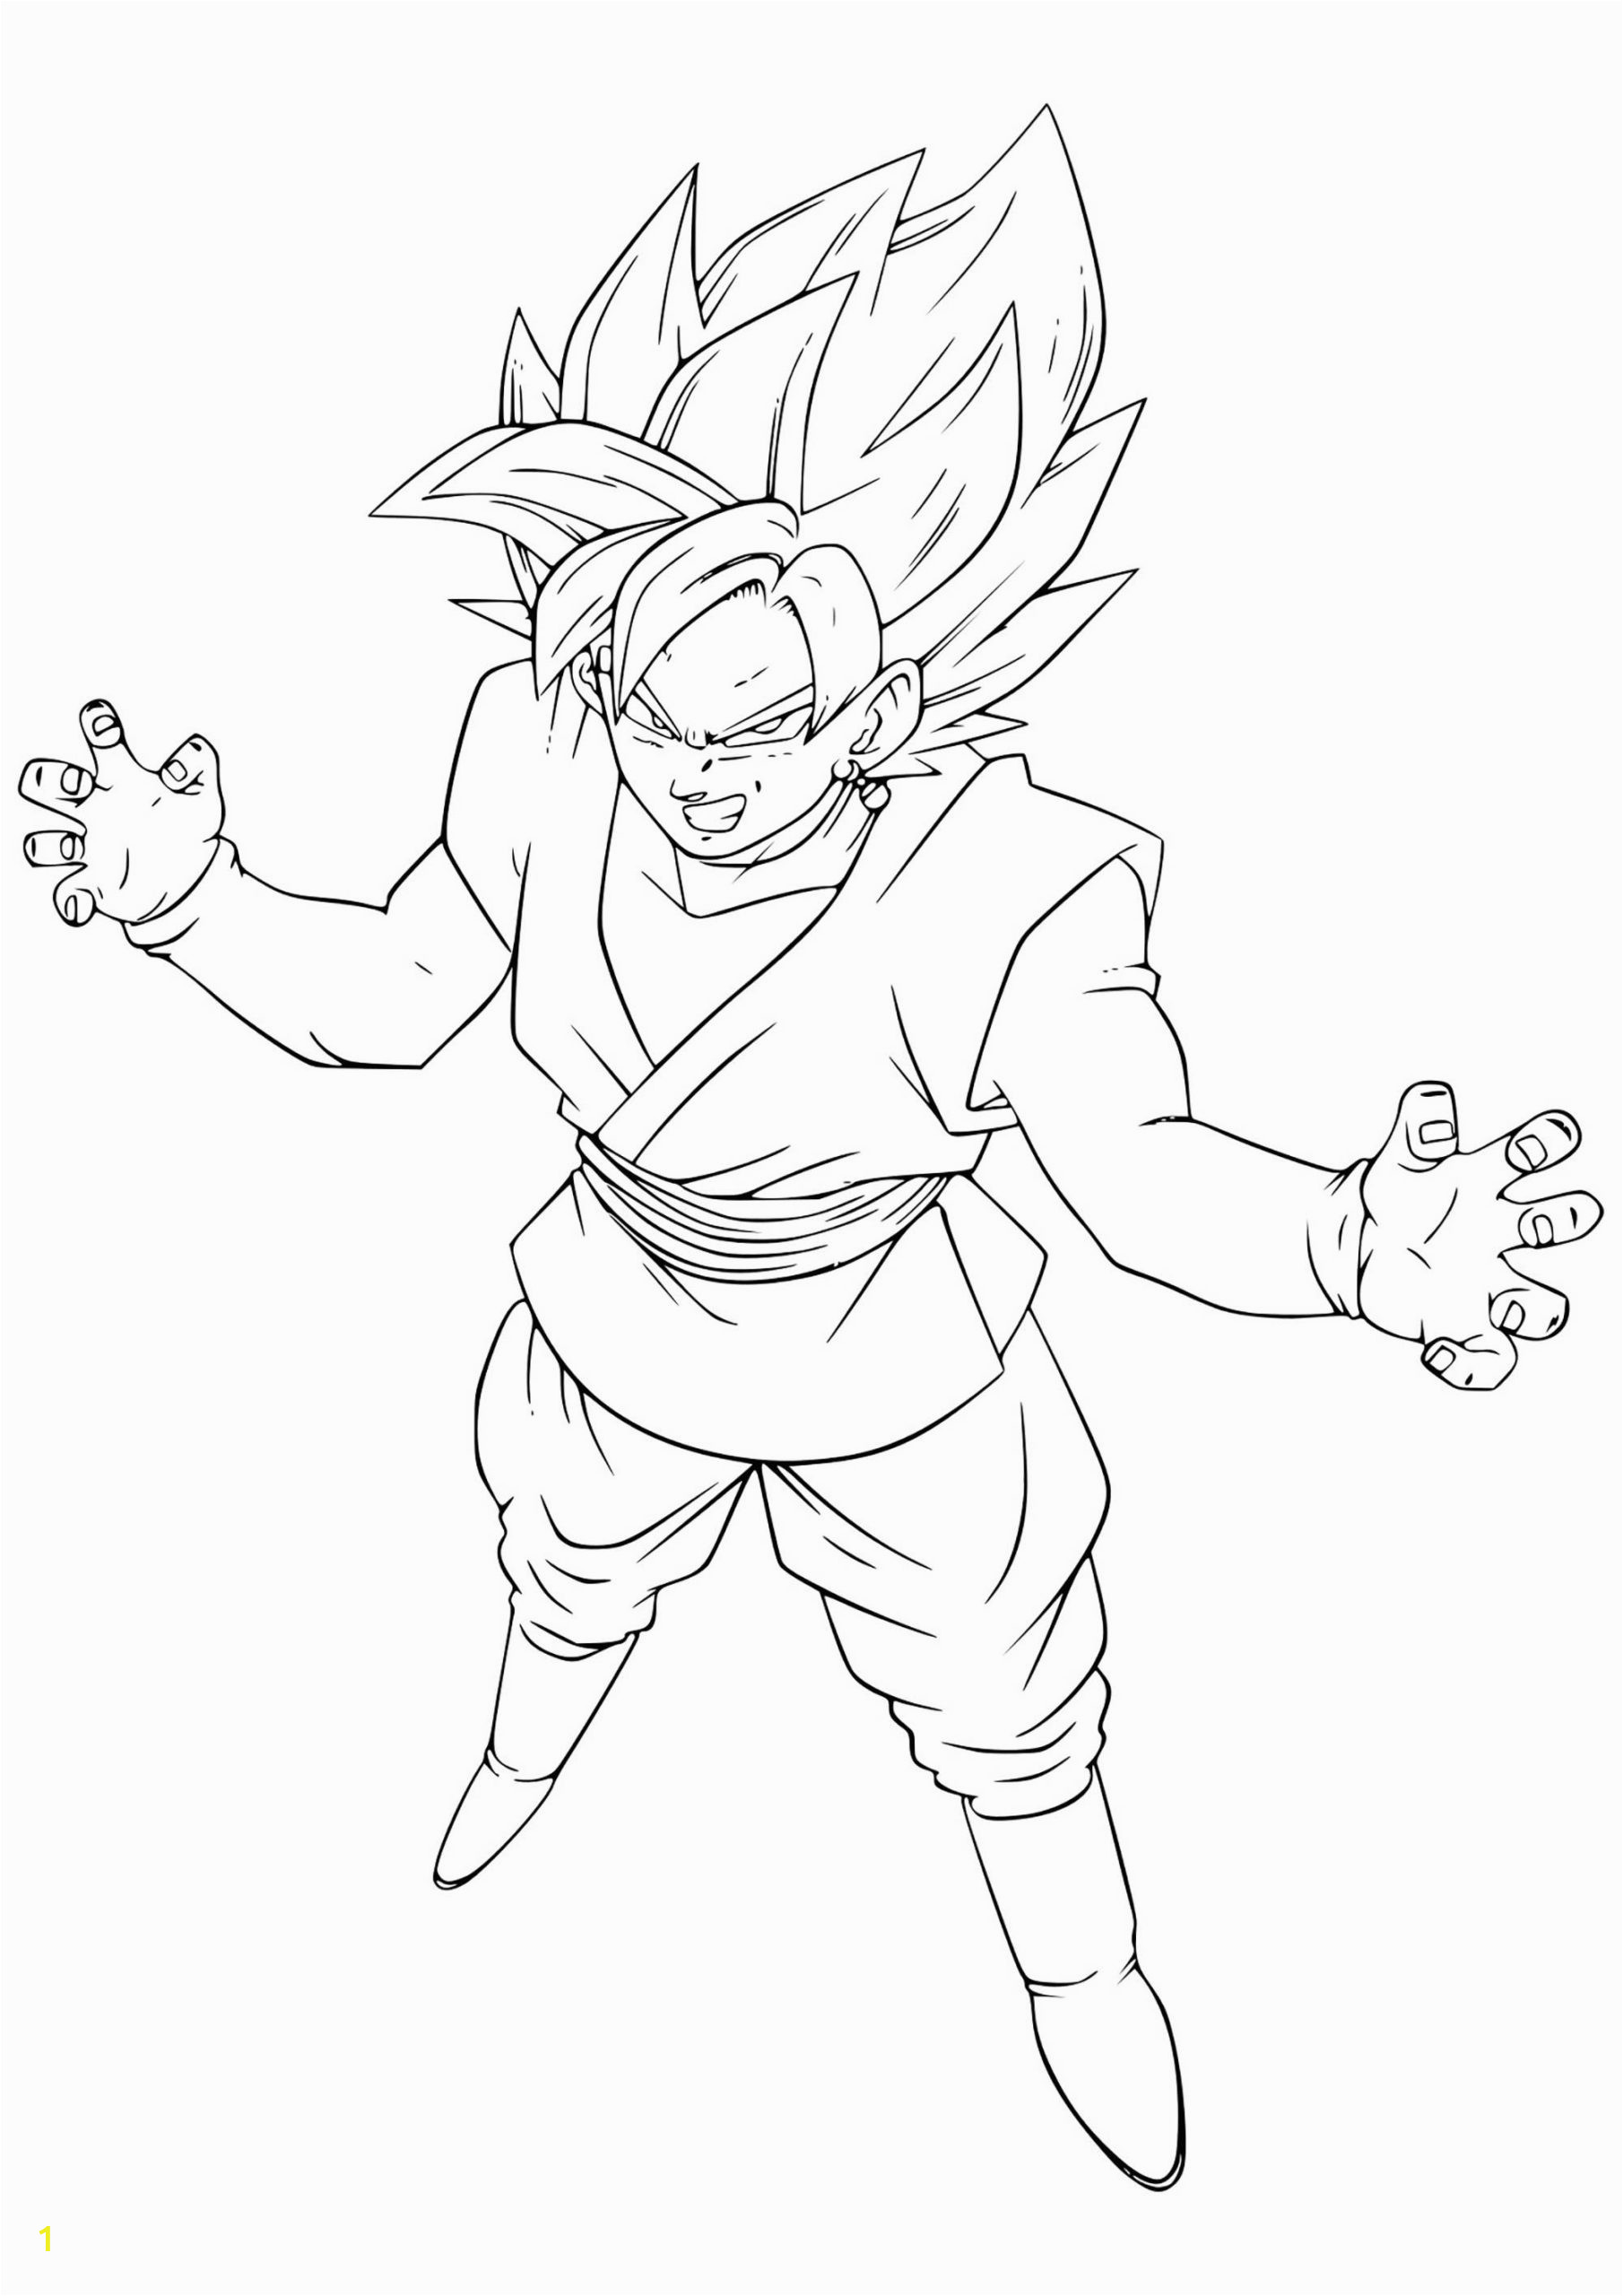 free coloring pages dragon ball z devolution sheets printable worksheets advanced characters scaled